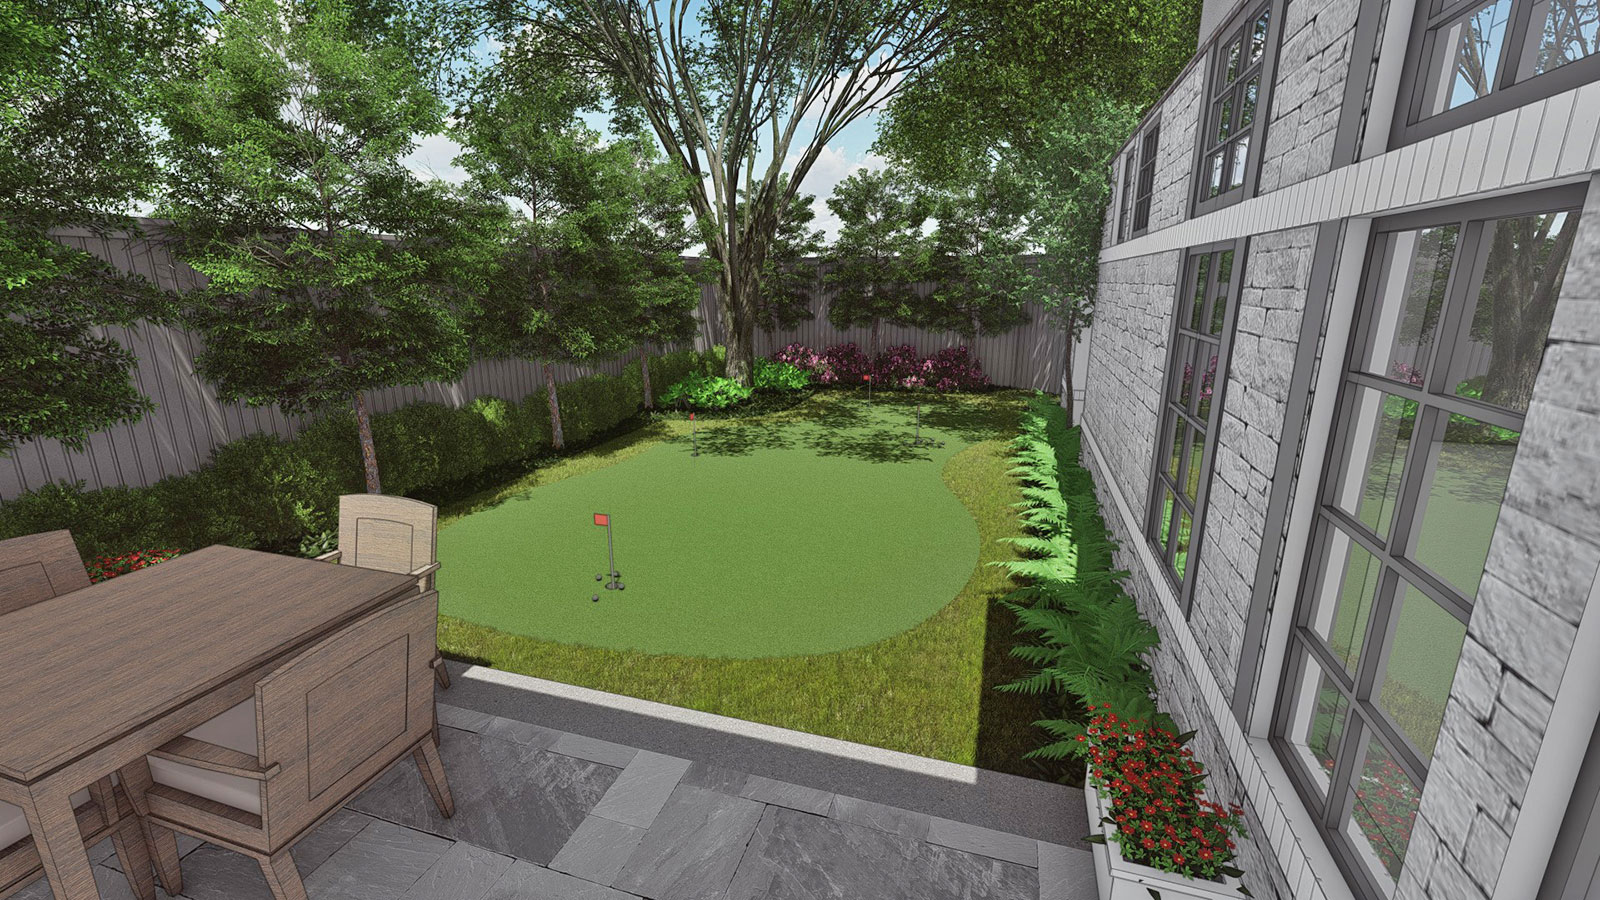 REAR GARDEN & PUTTING GREEN